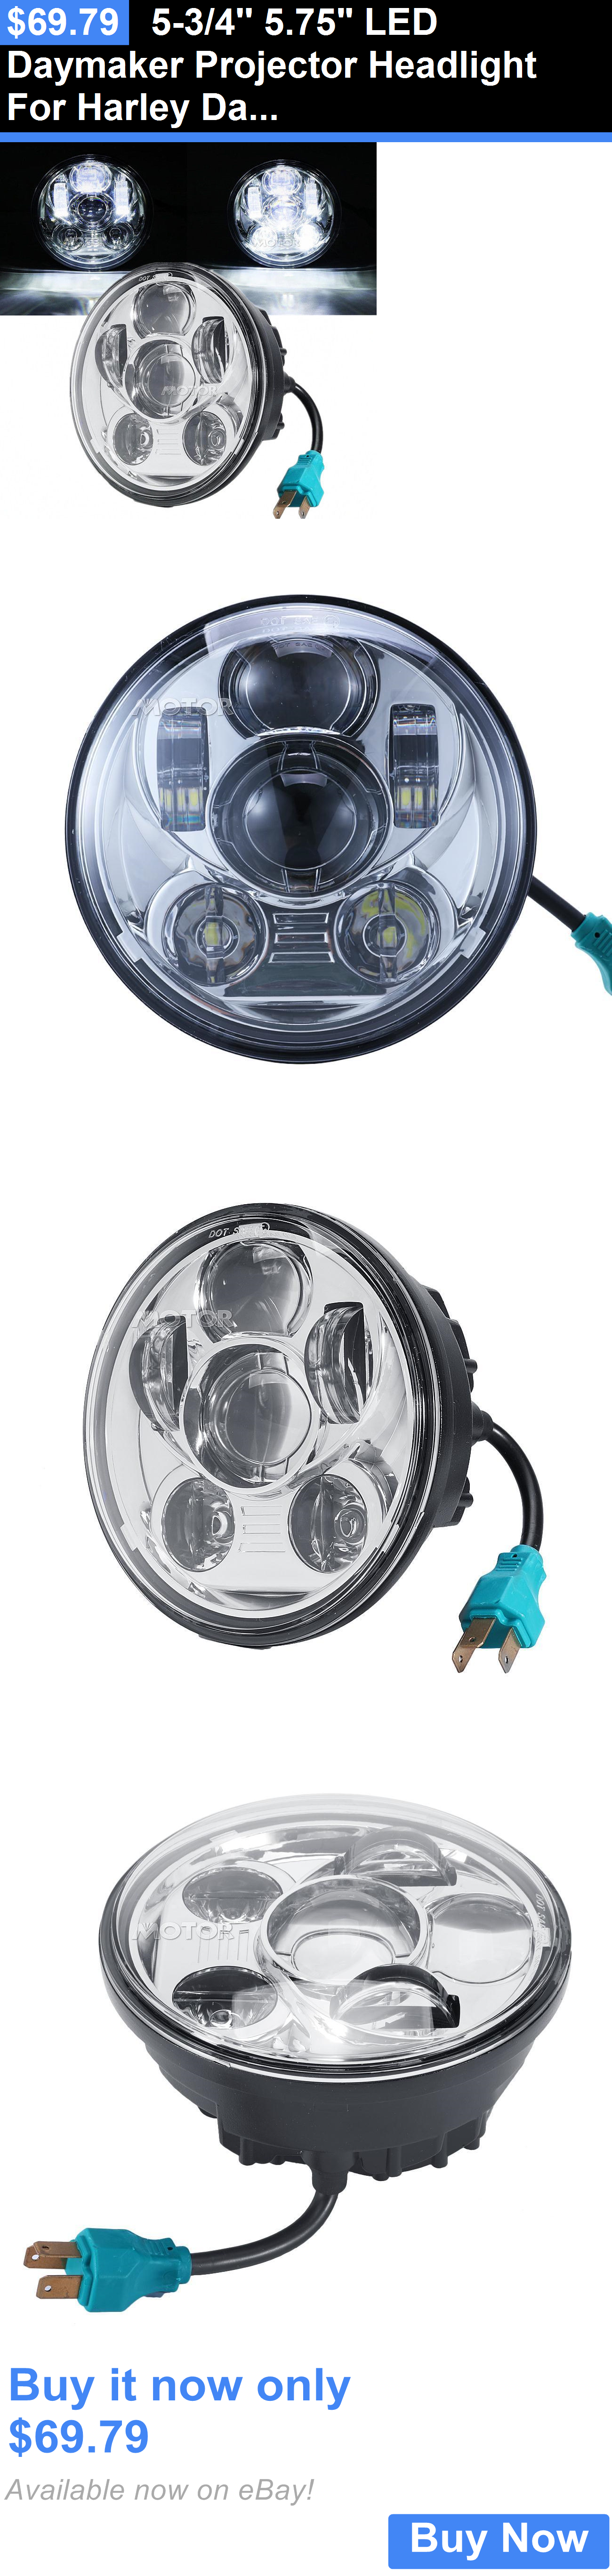 motorcycle parts: 5-3/4 5 75 Led Daymaker Projector